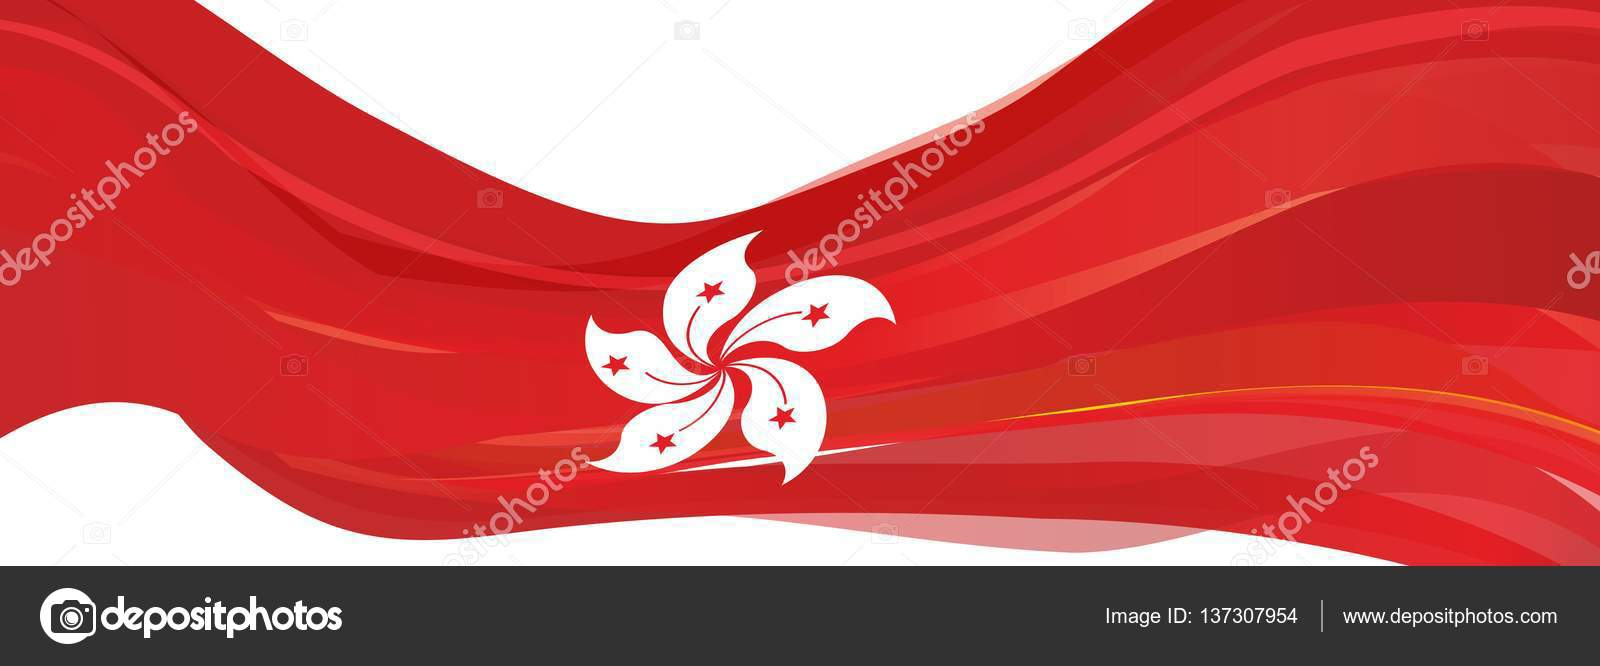 Red flag with a white flower of the chinese city of hong kong red flag with a white flower of the chinese city of hong kong stock photo mightylinksfo